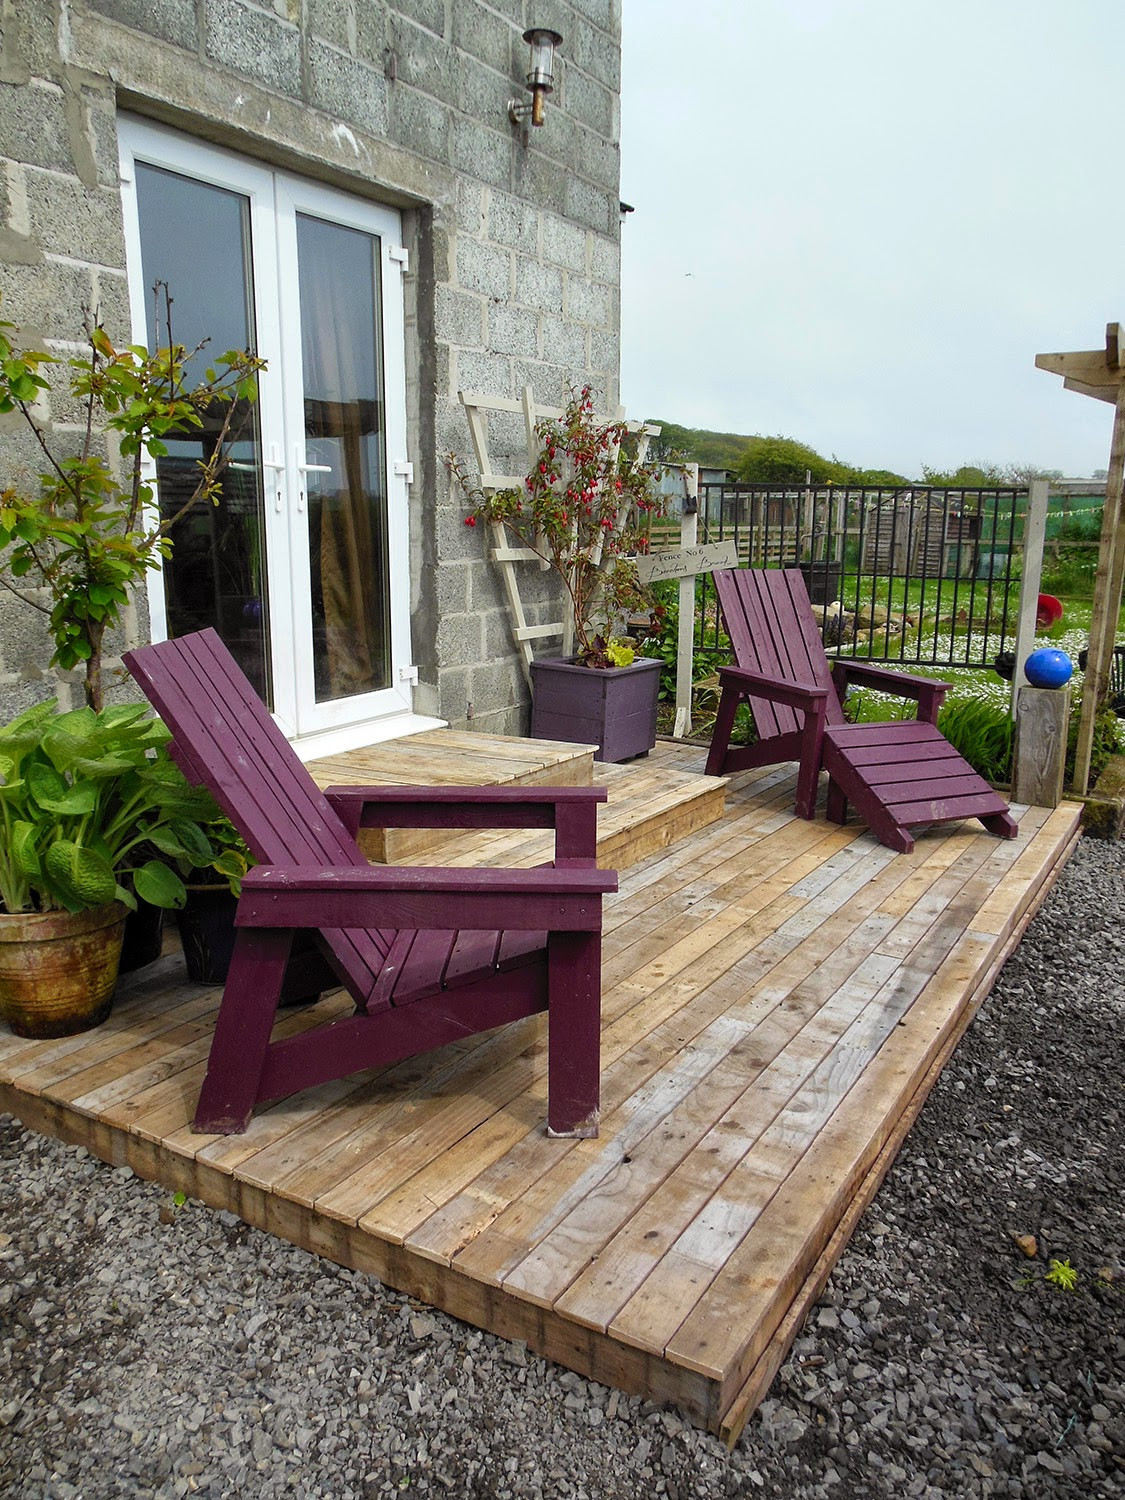 Best ideas about DIY Wood Decking . Save or Pin Coach House Crafting on a bud Diy pallet wood decking Now.